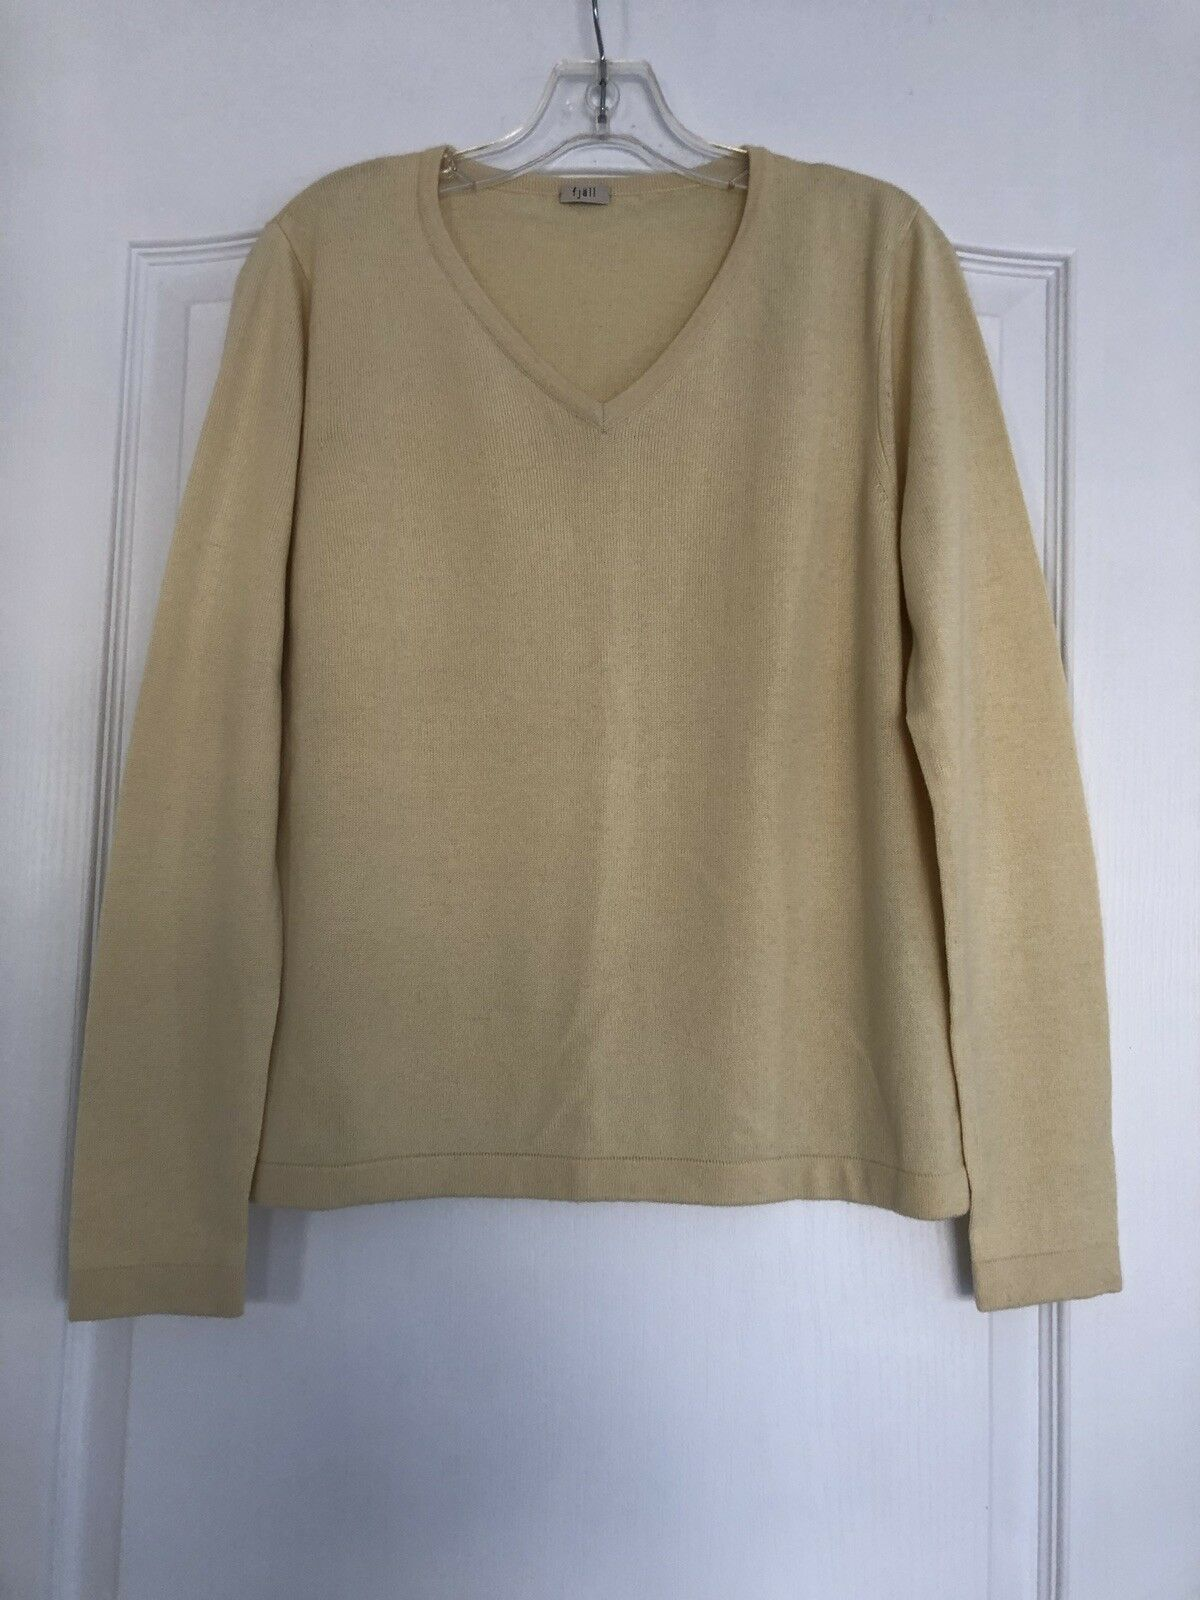 Fjallraven Women's Silk, Cashmere, Wool Sweater - Soft Yellow - Medium NWOT